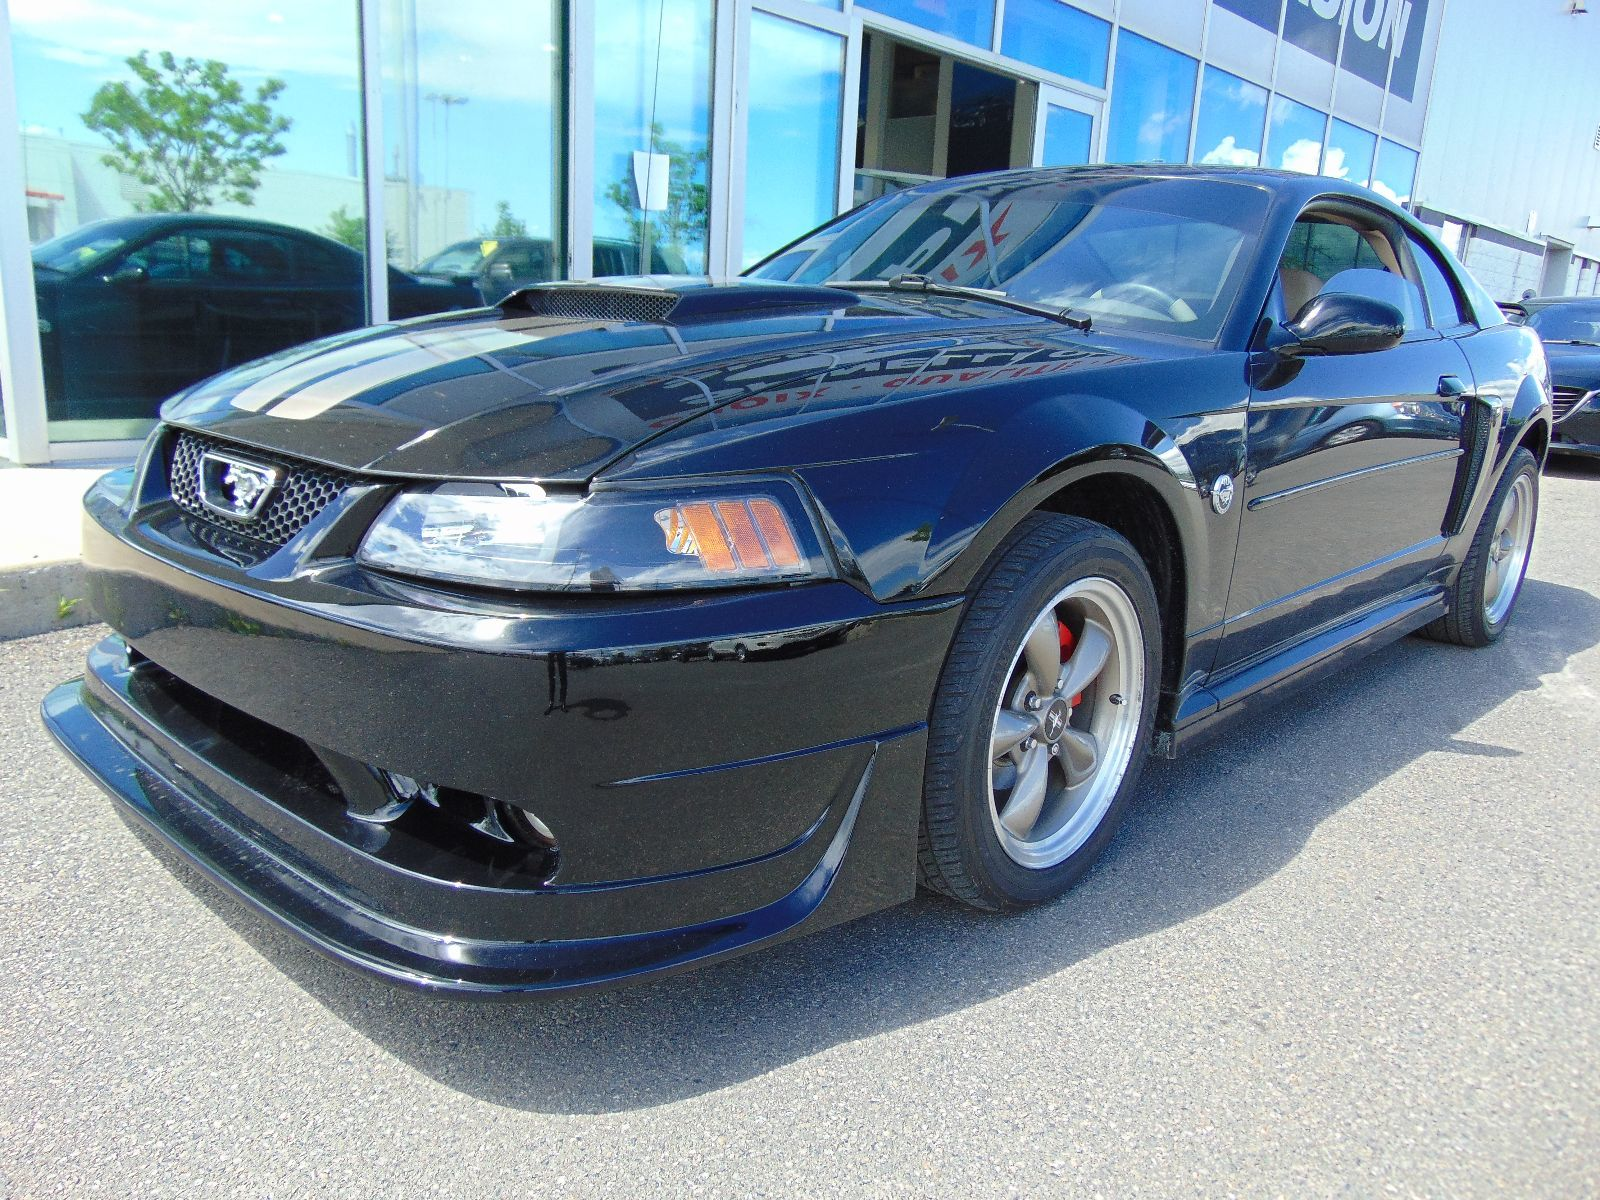 2004 ford mustang gt deal pending manual d 39 occasion vendre spinelli honda lachine p6796b. Black Bedroom Furniture Sets. Home Design Ideas